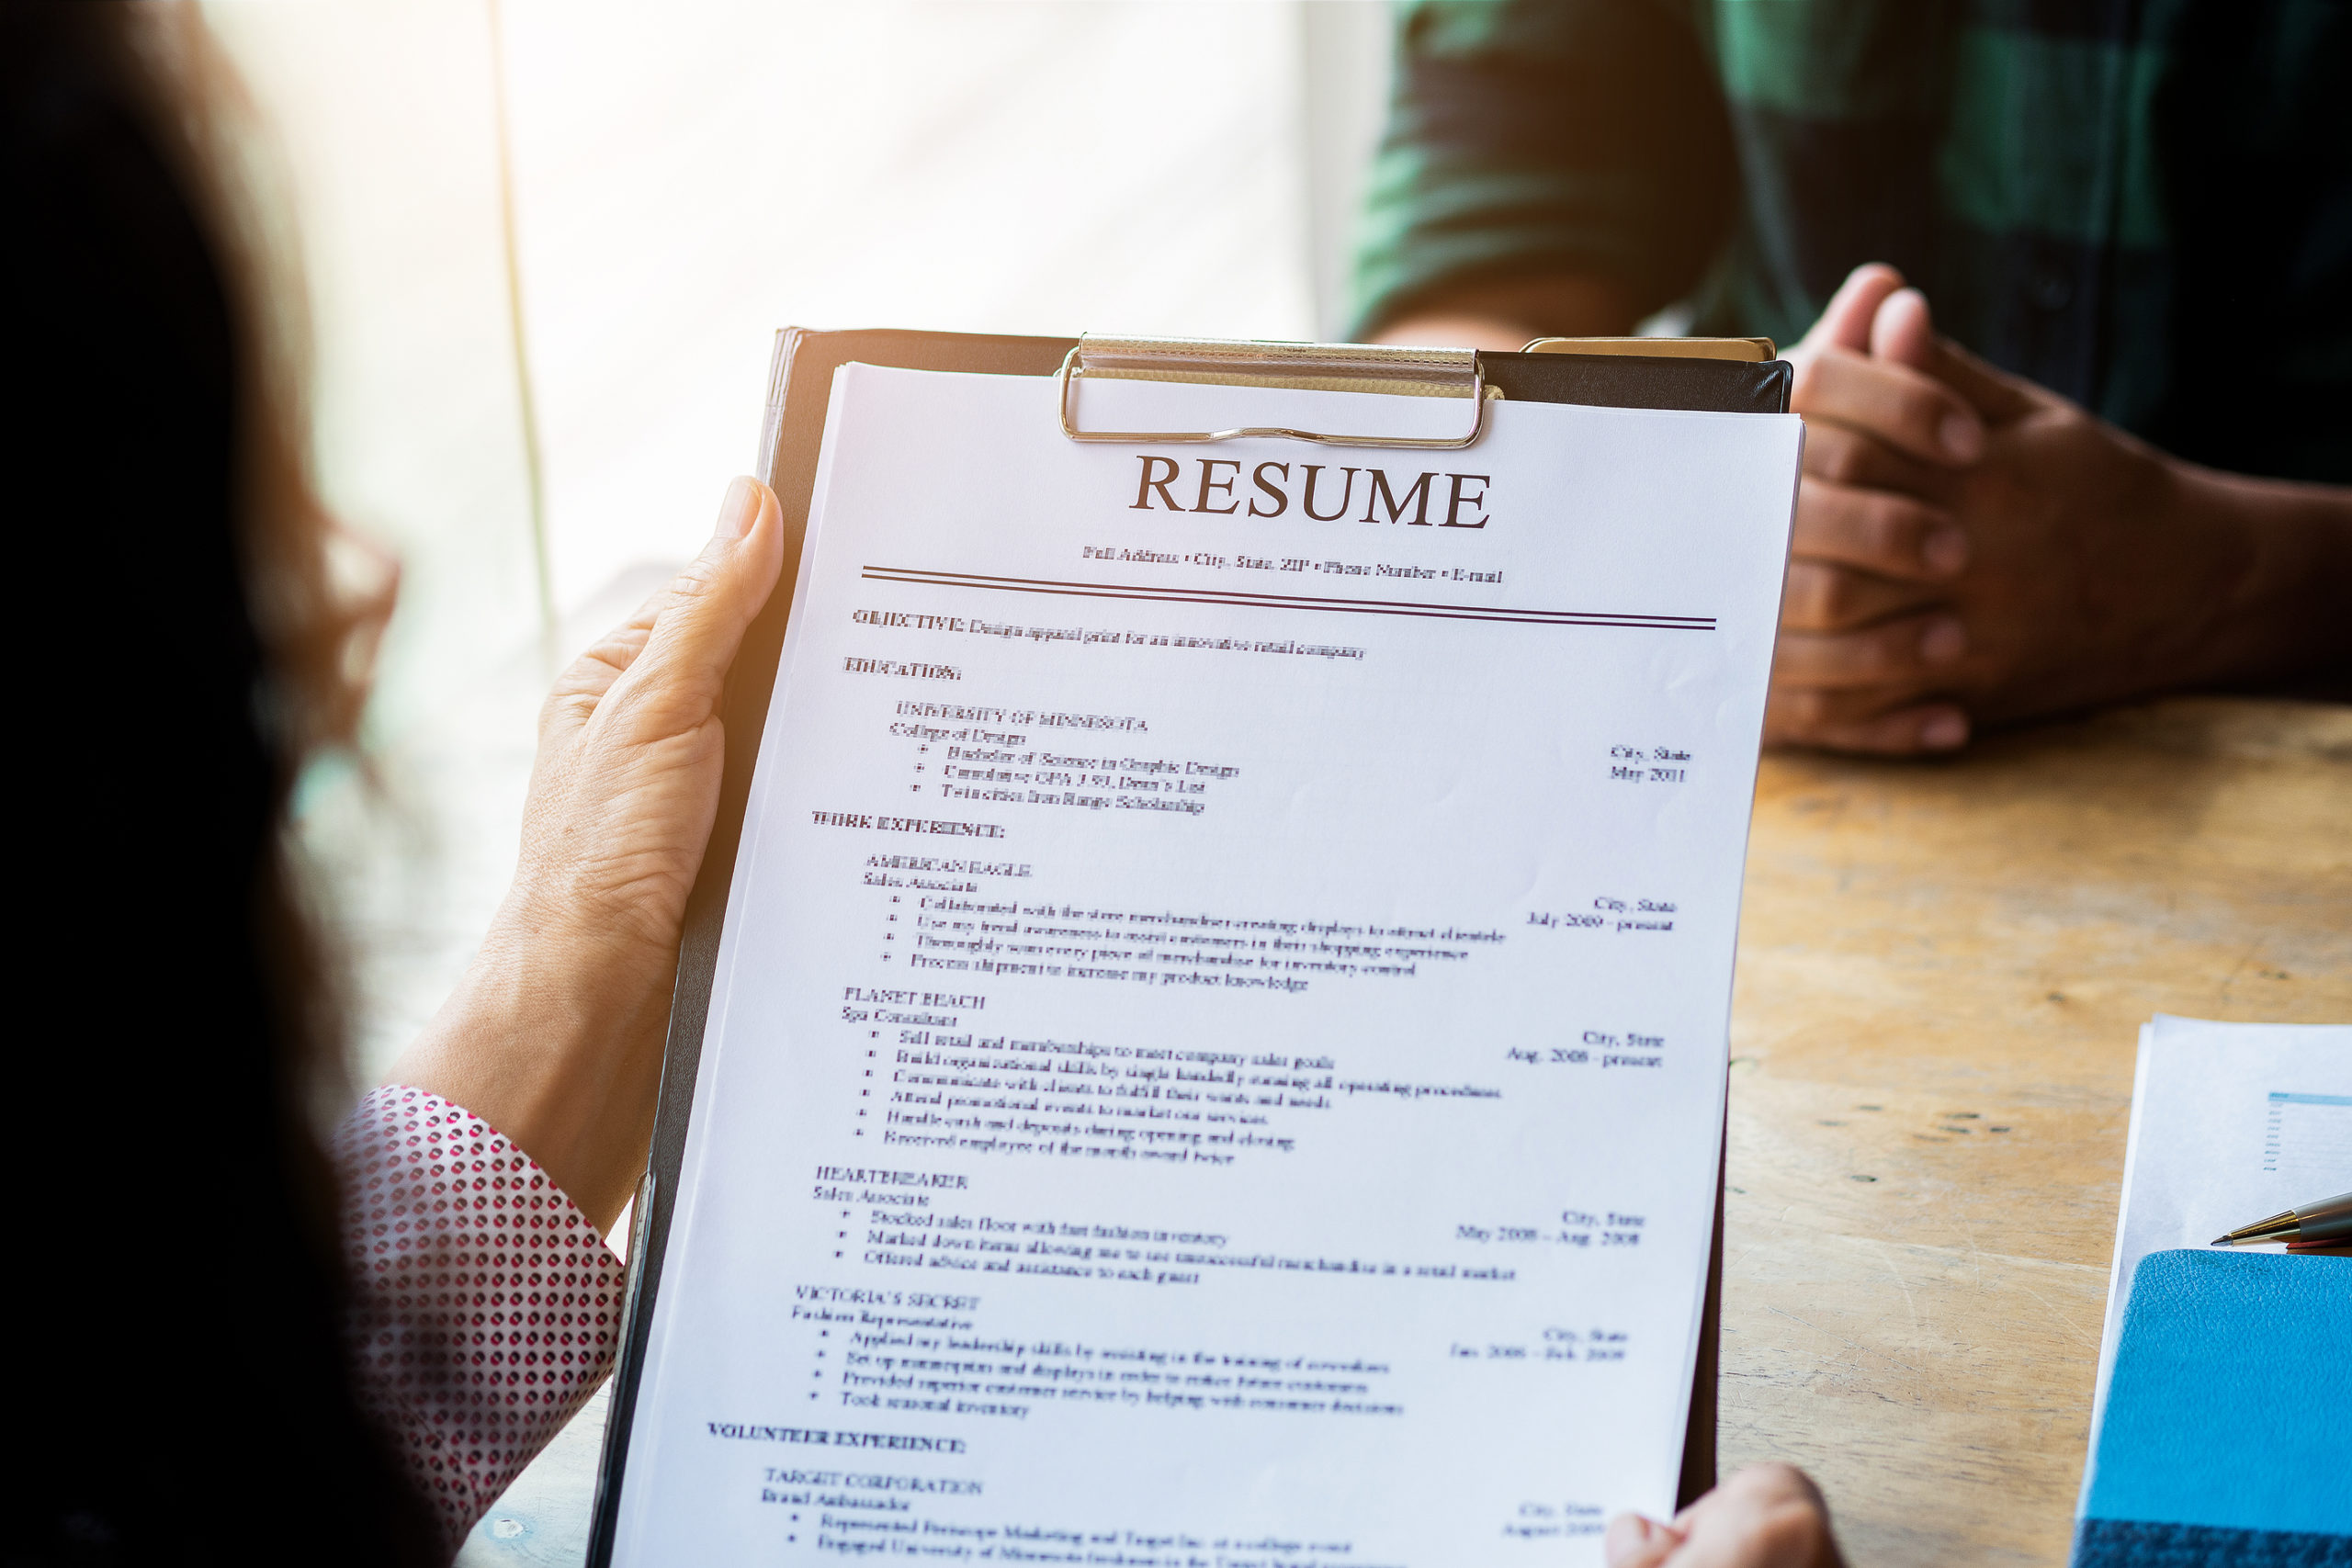 Interviewer reading an IT job resume, Person submits job application, Person describe yourself to interviewer, Close up view of job interview in office, focus on resume, recruiter considering application, hr manager making hiring decision